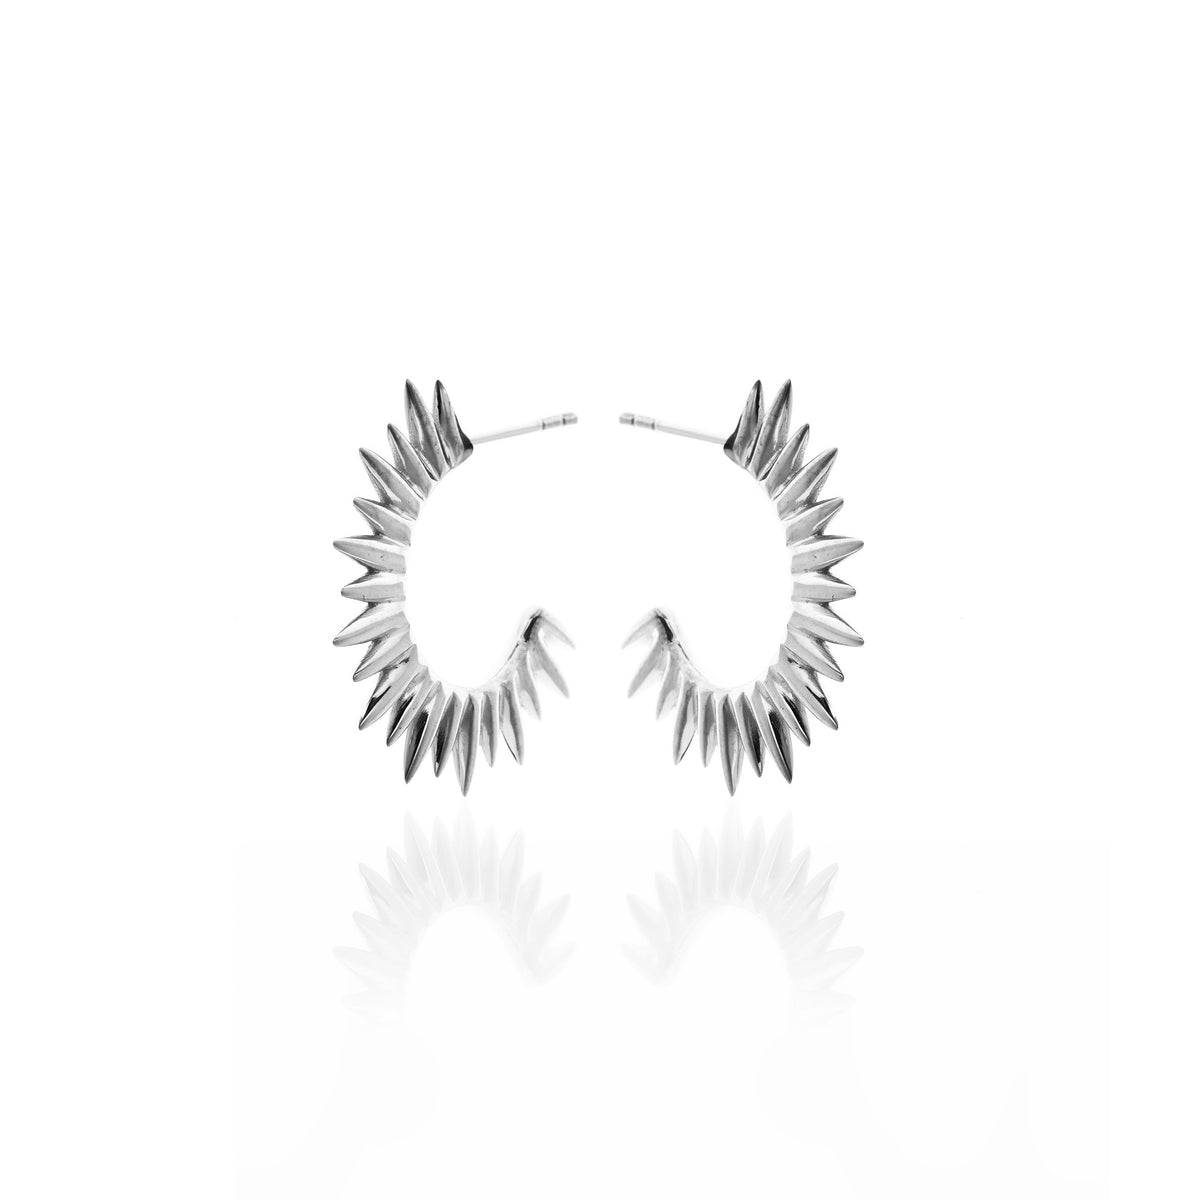 Radiance Earring Silk and Steel Buy Online Stockists NZ Jewellery New Zealand Designer Silver